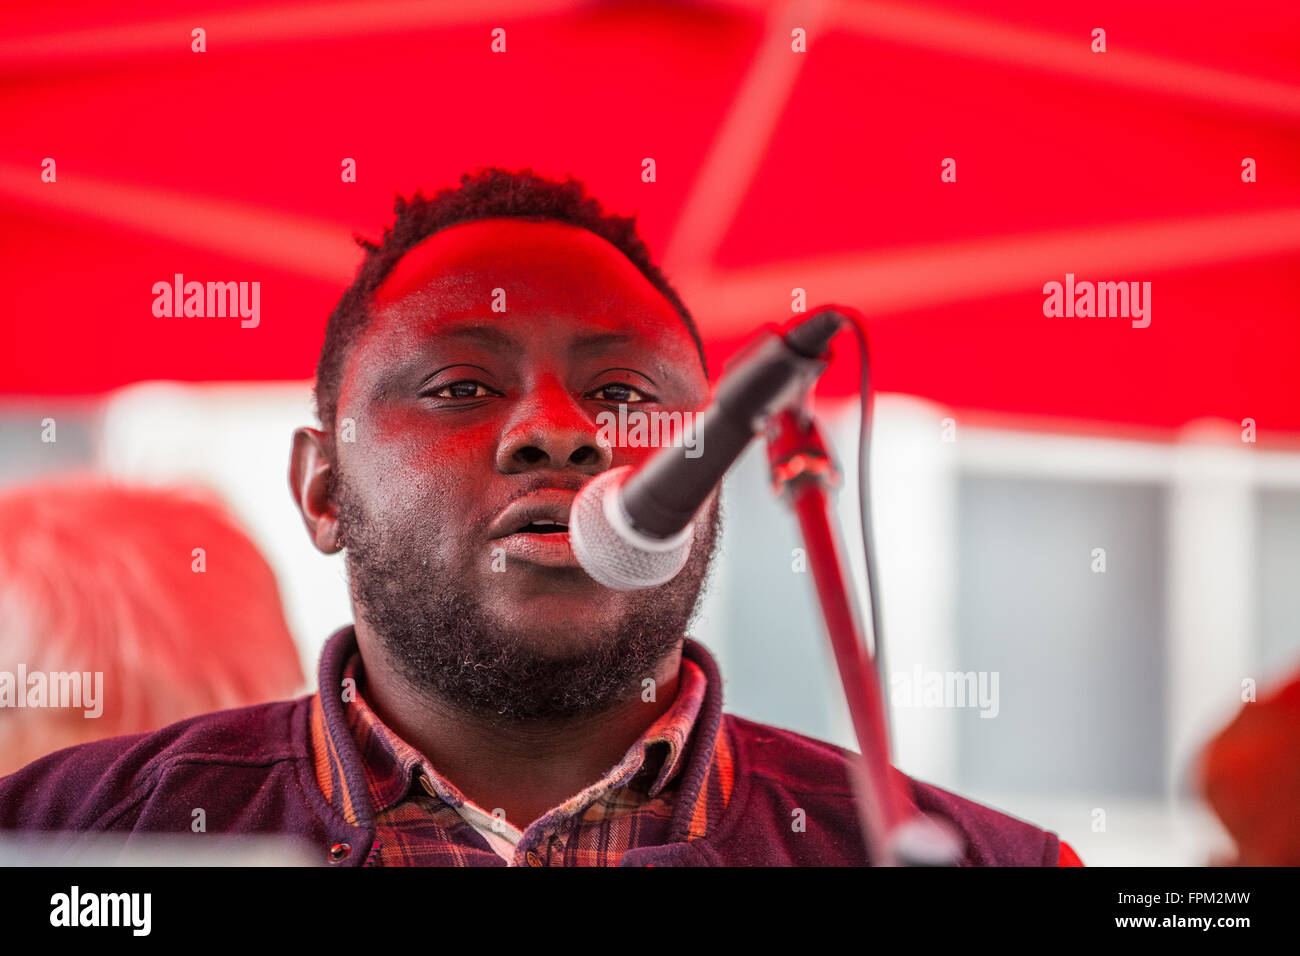 London, UK. 19th March, 2016. Luqman Onikosi, a University of Sussex student from Nigeria threatened with deportation, - Stock Image